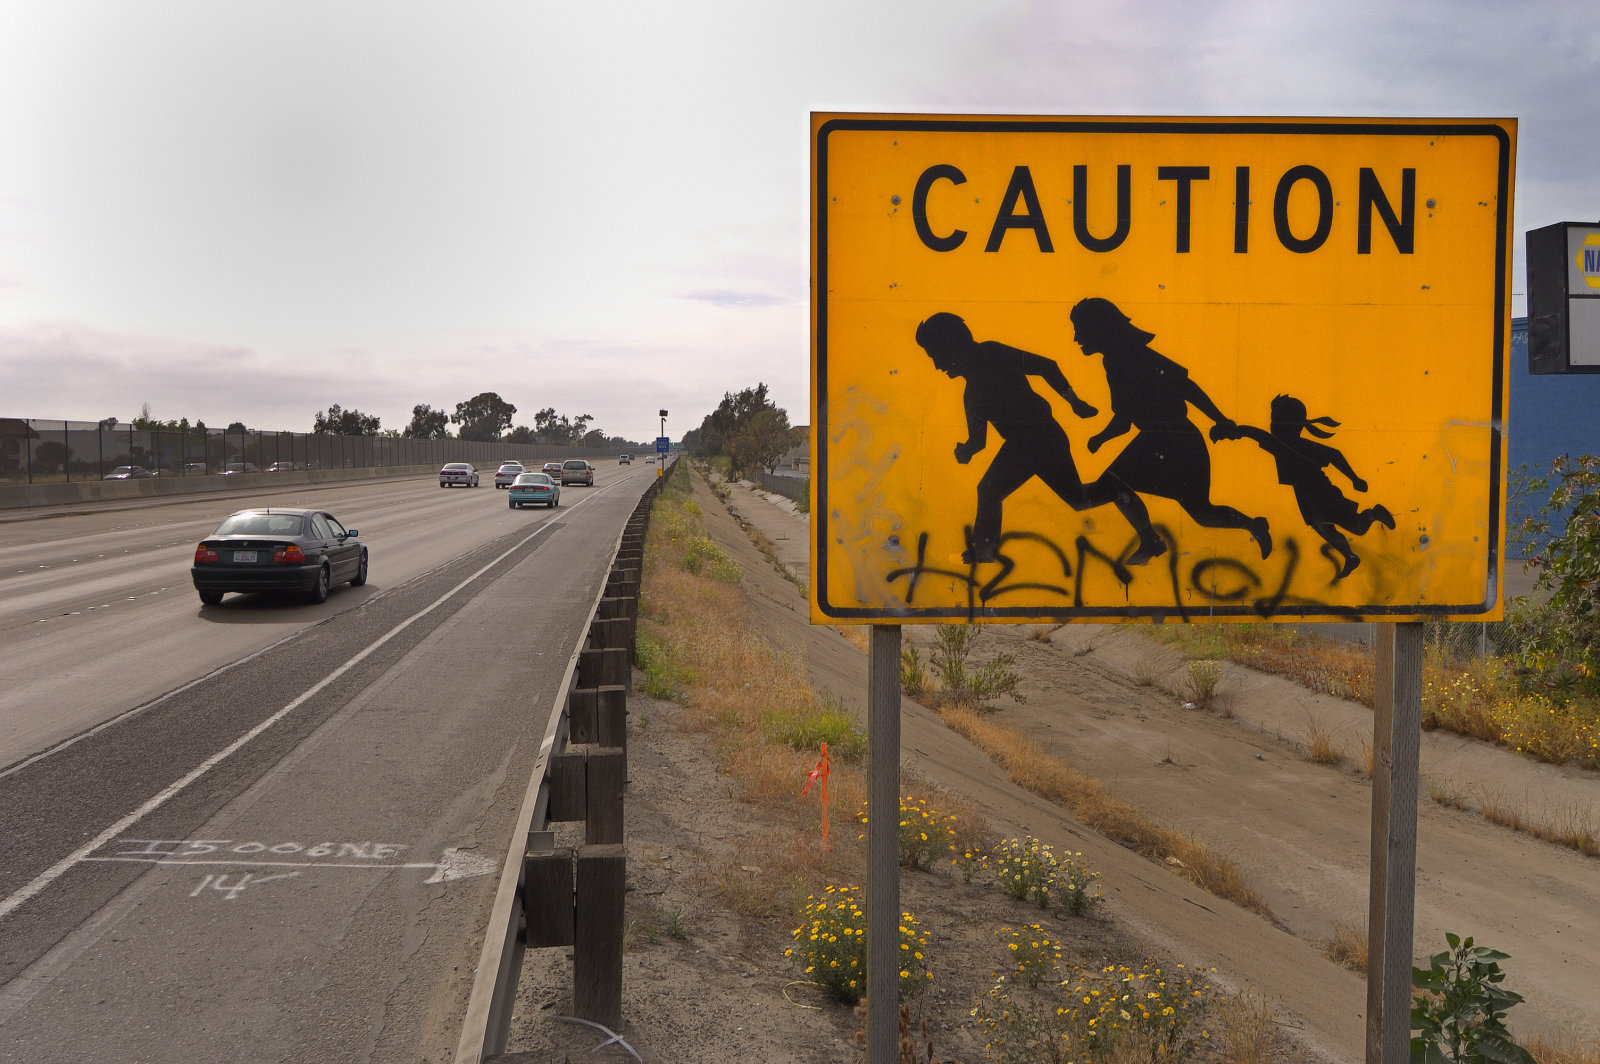 A road sign, along Interstate Highway 5 near San Ysidro, California, warns motorists to watch out for migrant workers crossing the highway. According to the US Border Patrol, 1,954 people died crossing the U.S.-Mexico border illegally between the years 1998-2004. The United States office of Homeland Security has plans to expand border security between the two countries in an attempt to stem the tide of illegal immigrants entering the USA from Mexico. (Photo by Christopher Morris/Corbis via Getty Images)